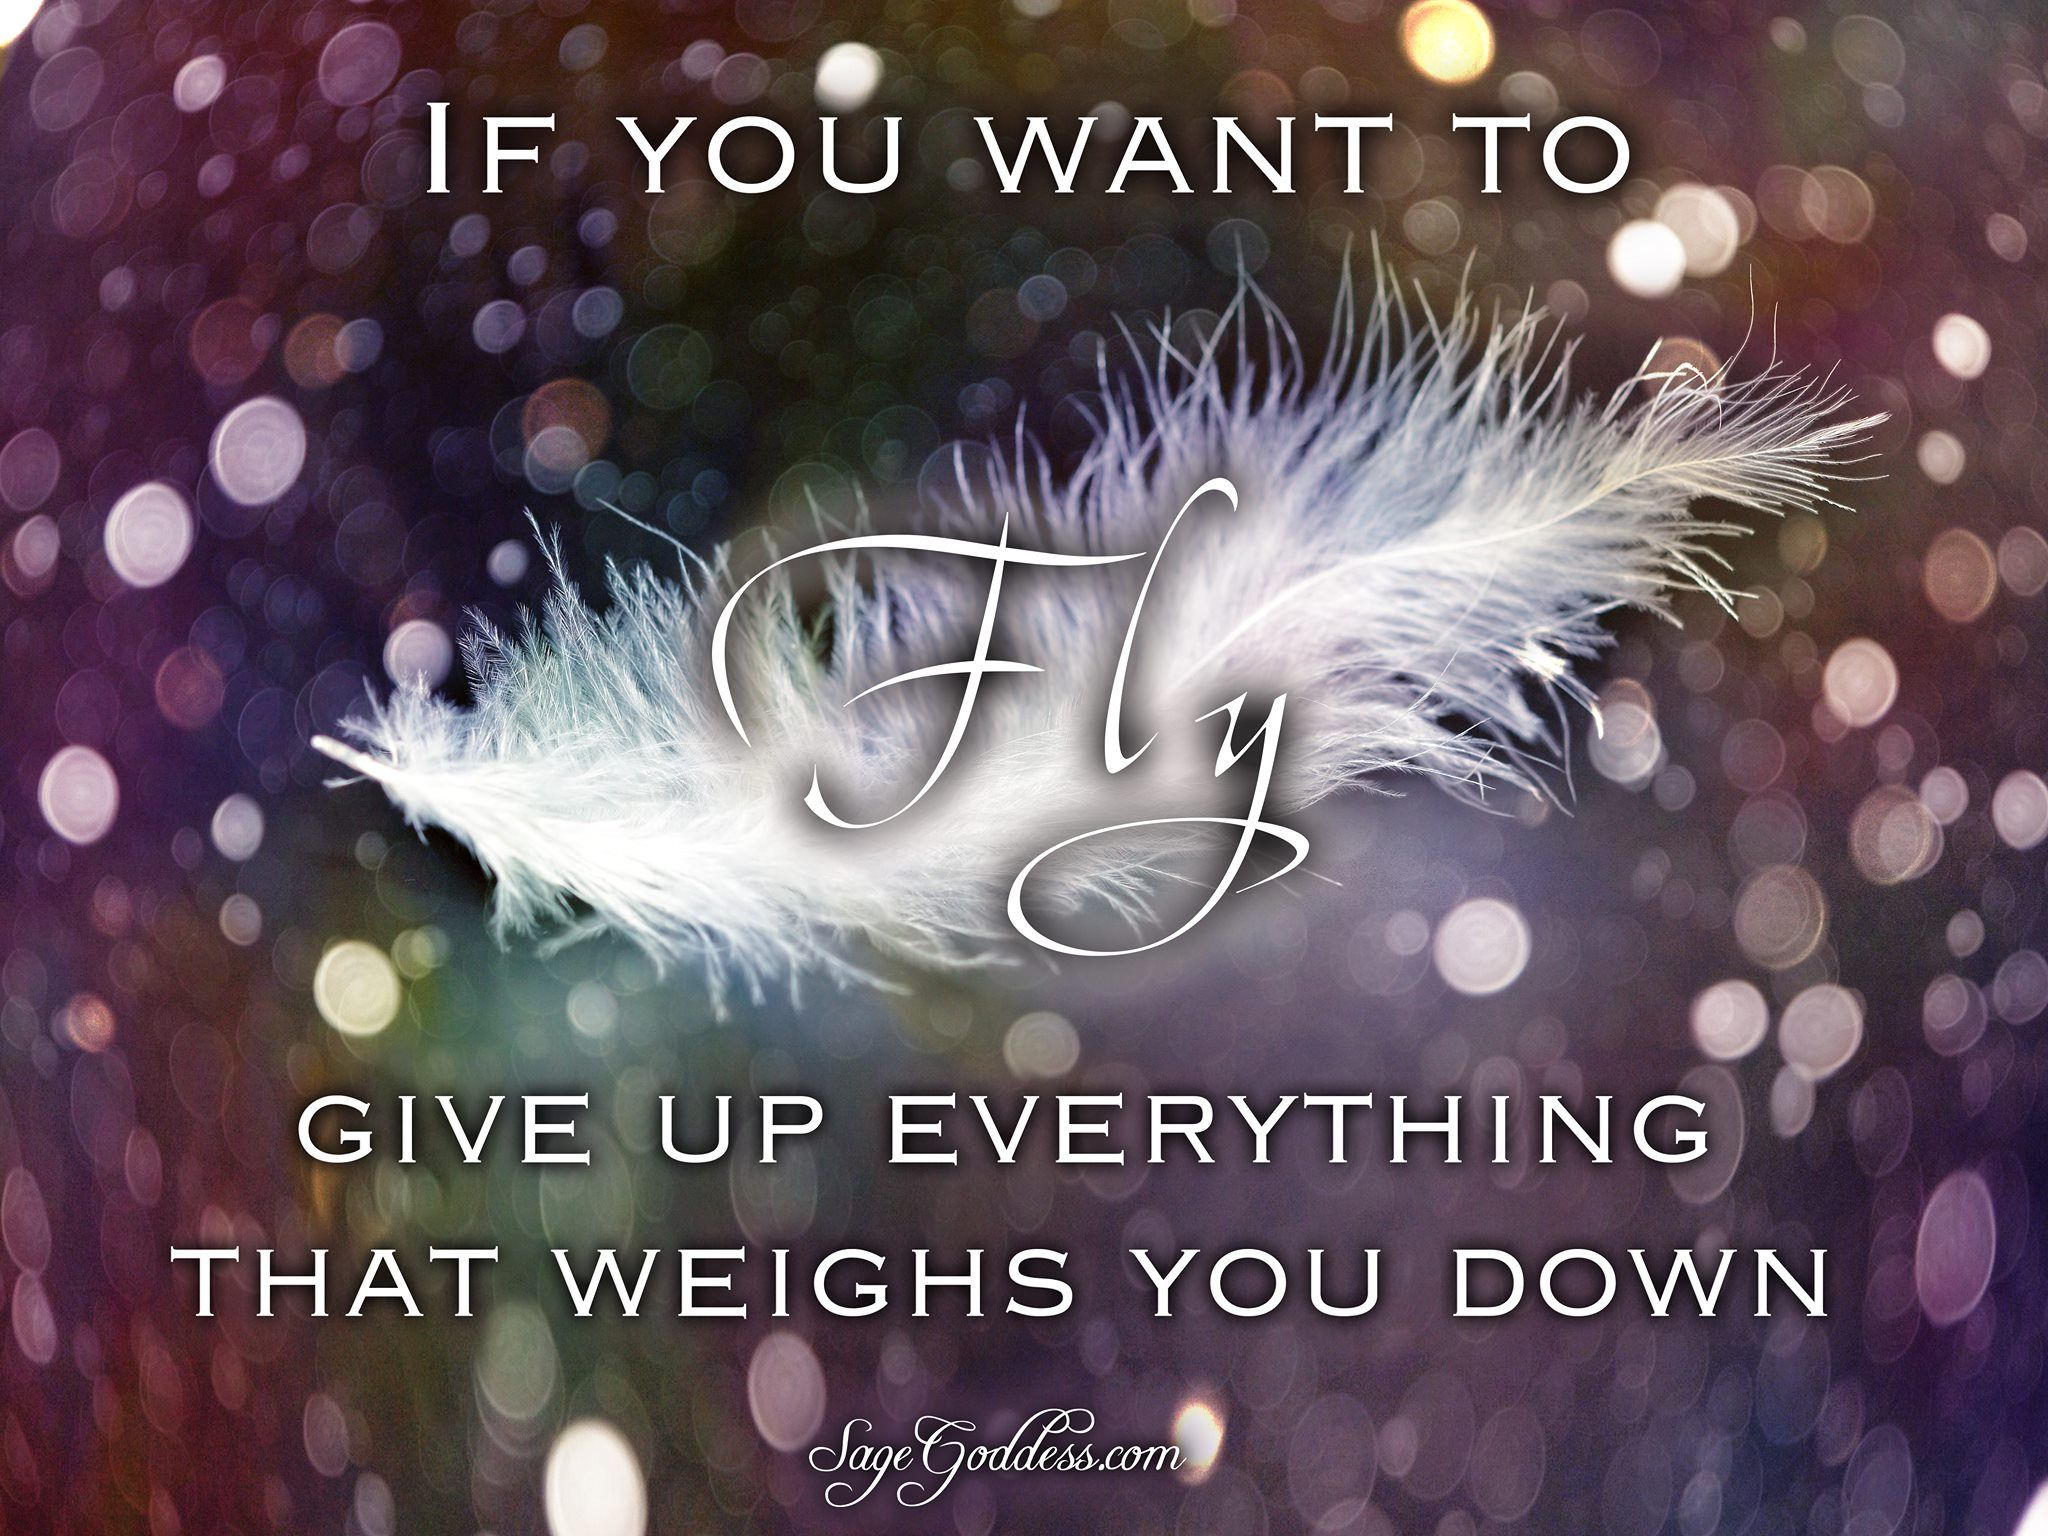 If you want to fly, give up everything that weighs you down. #LifeQuotes